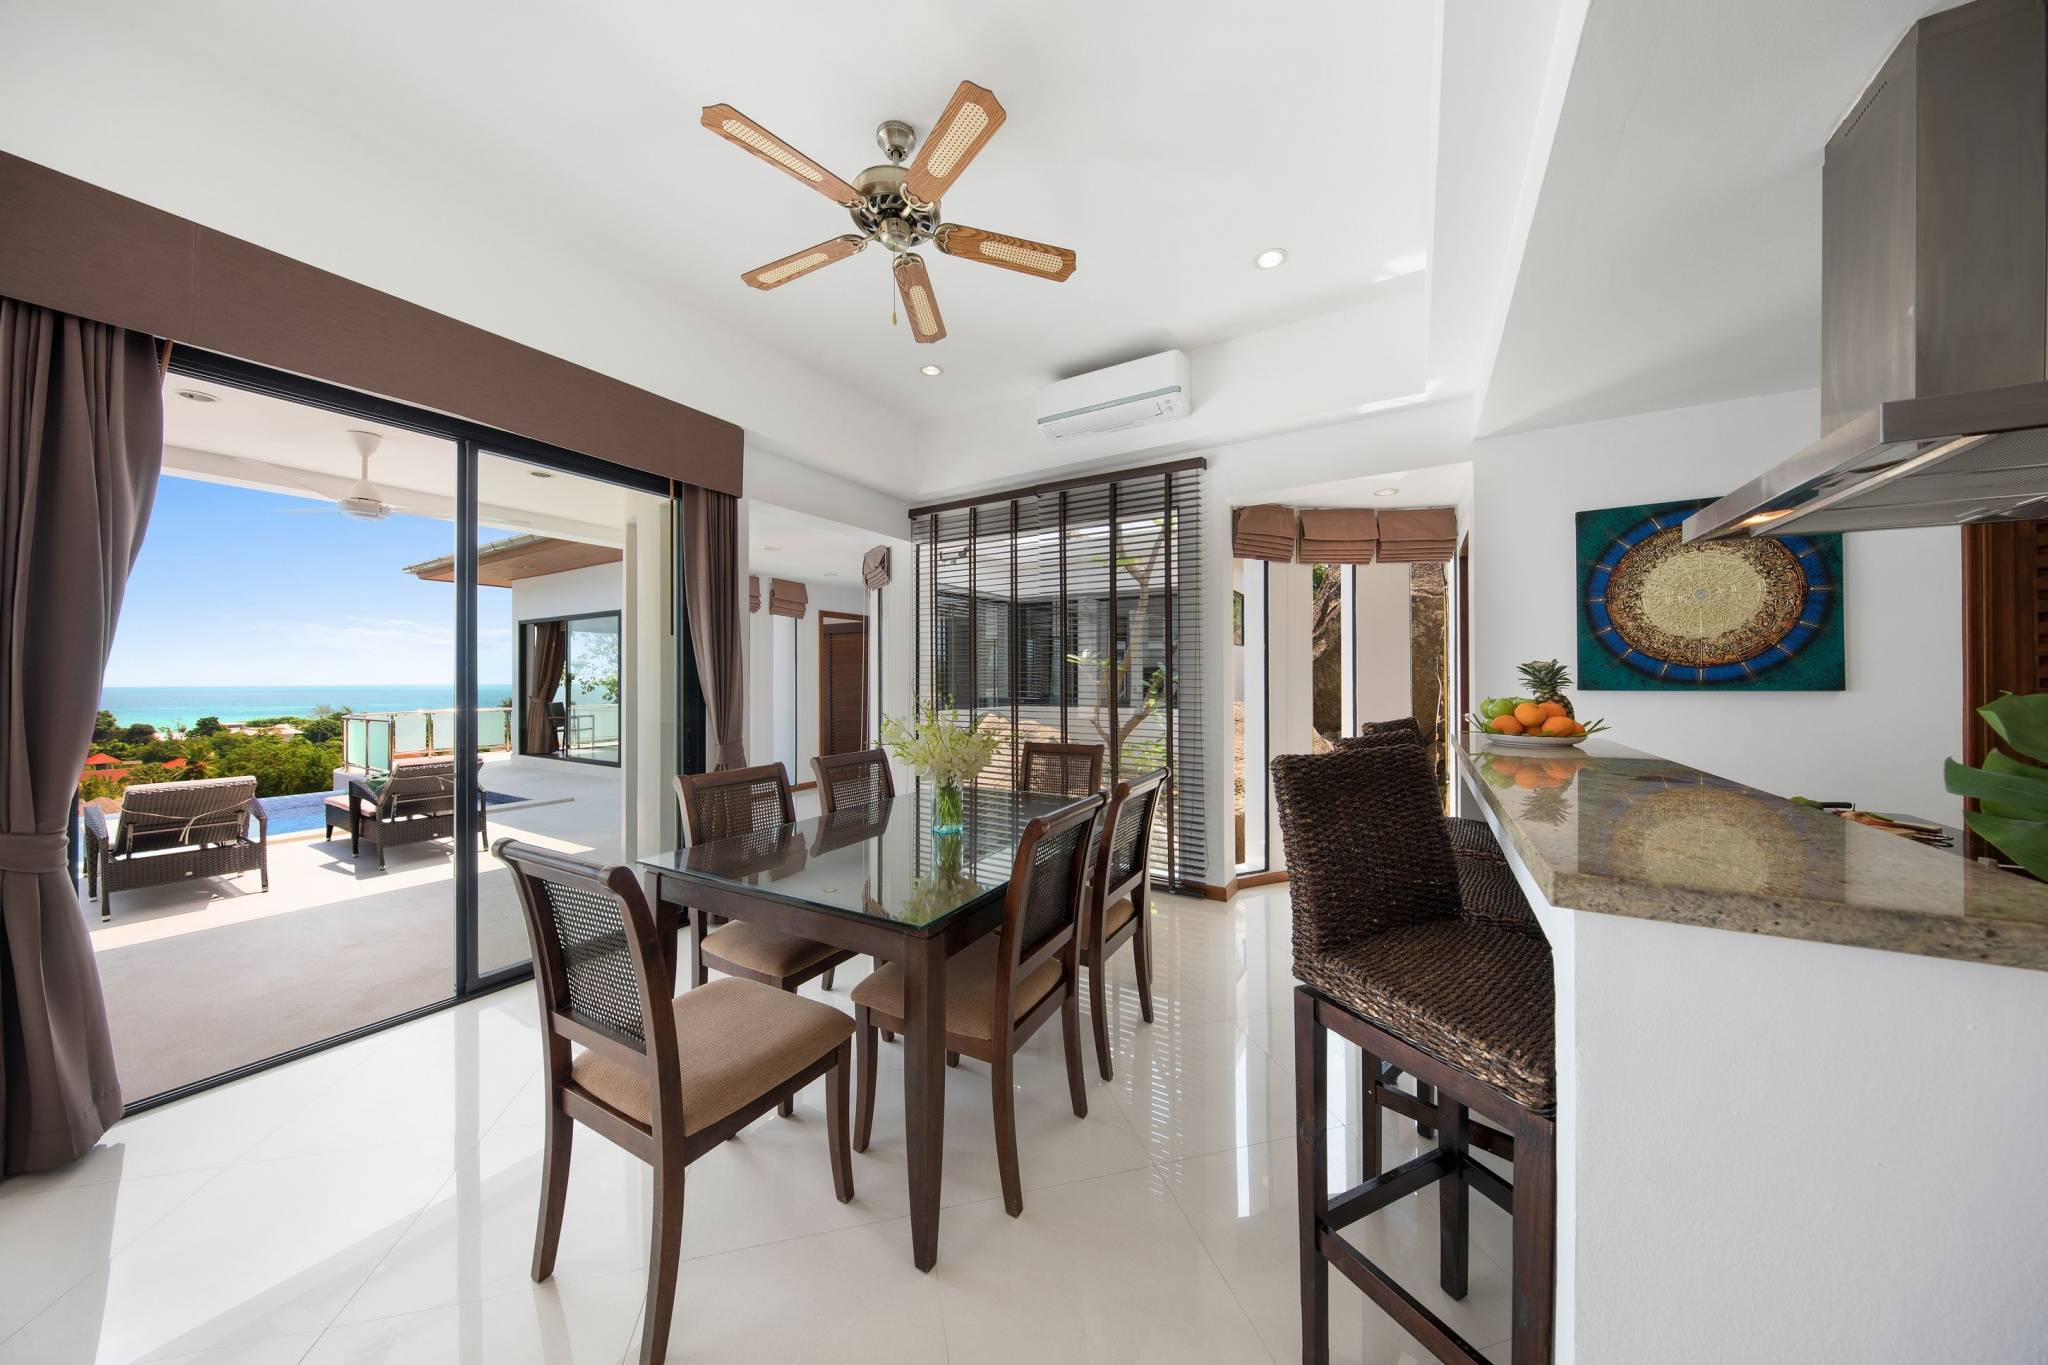 4 Bedroom Sunny Banks Villa For Sale in Lamai: 4 Bedroom Sunny Banks Villa – Lamai